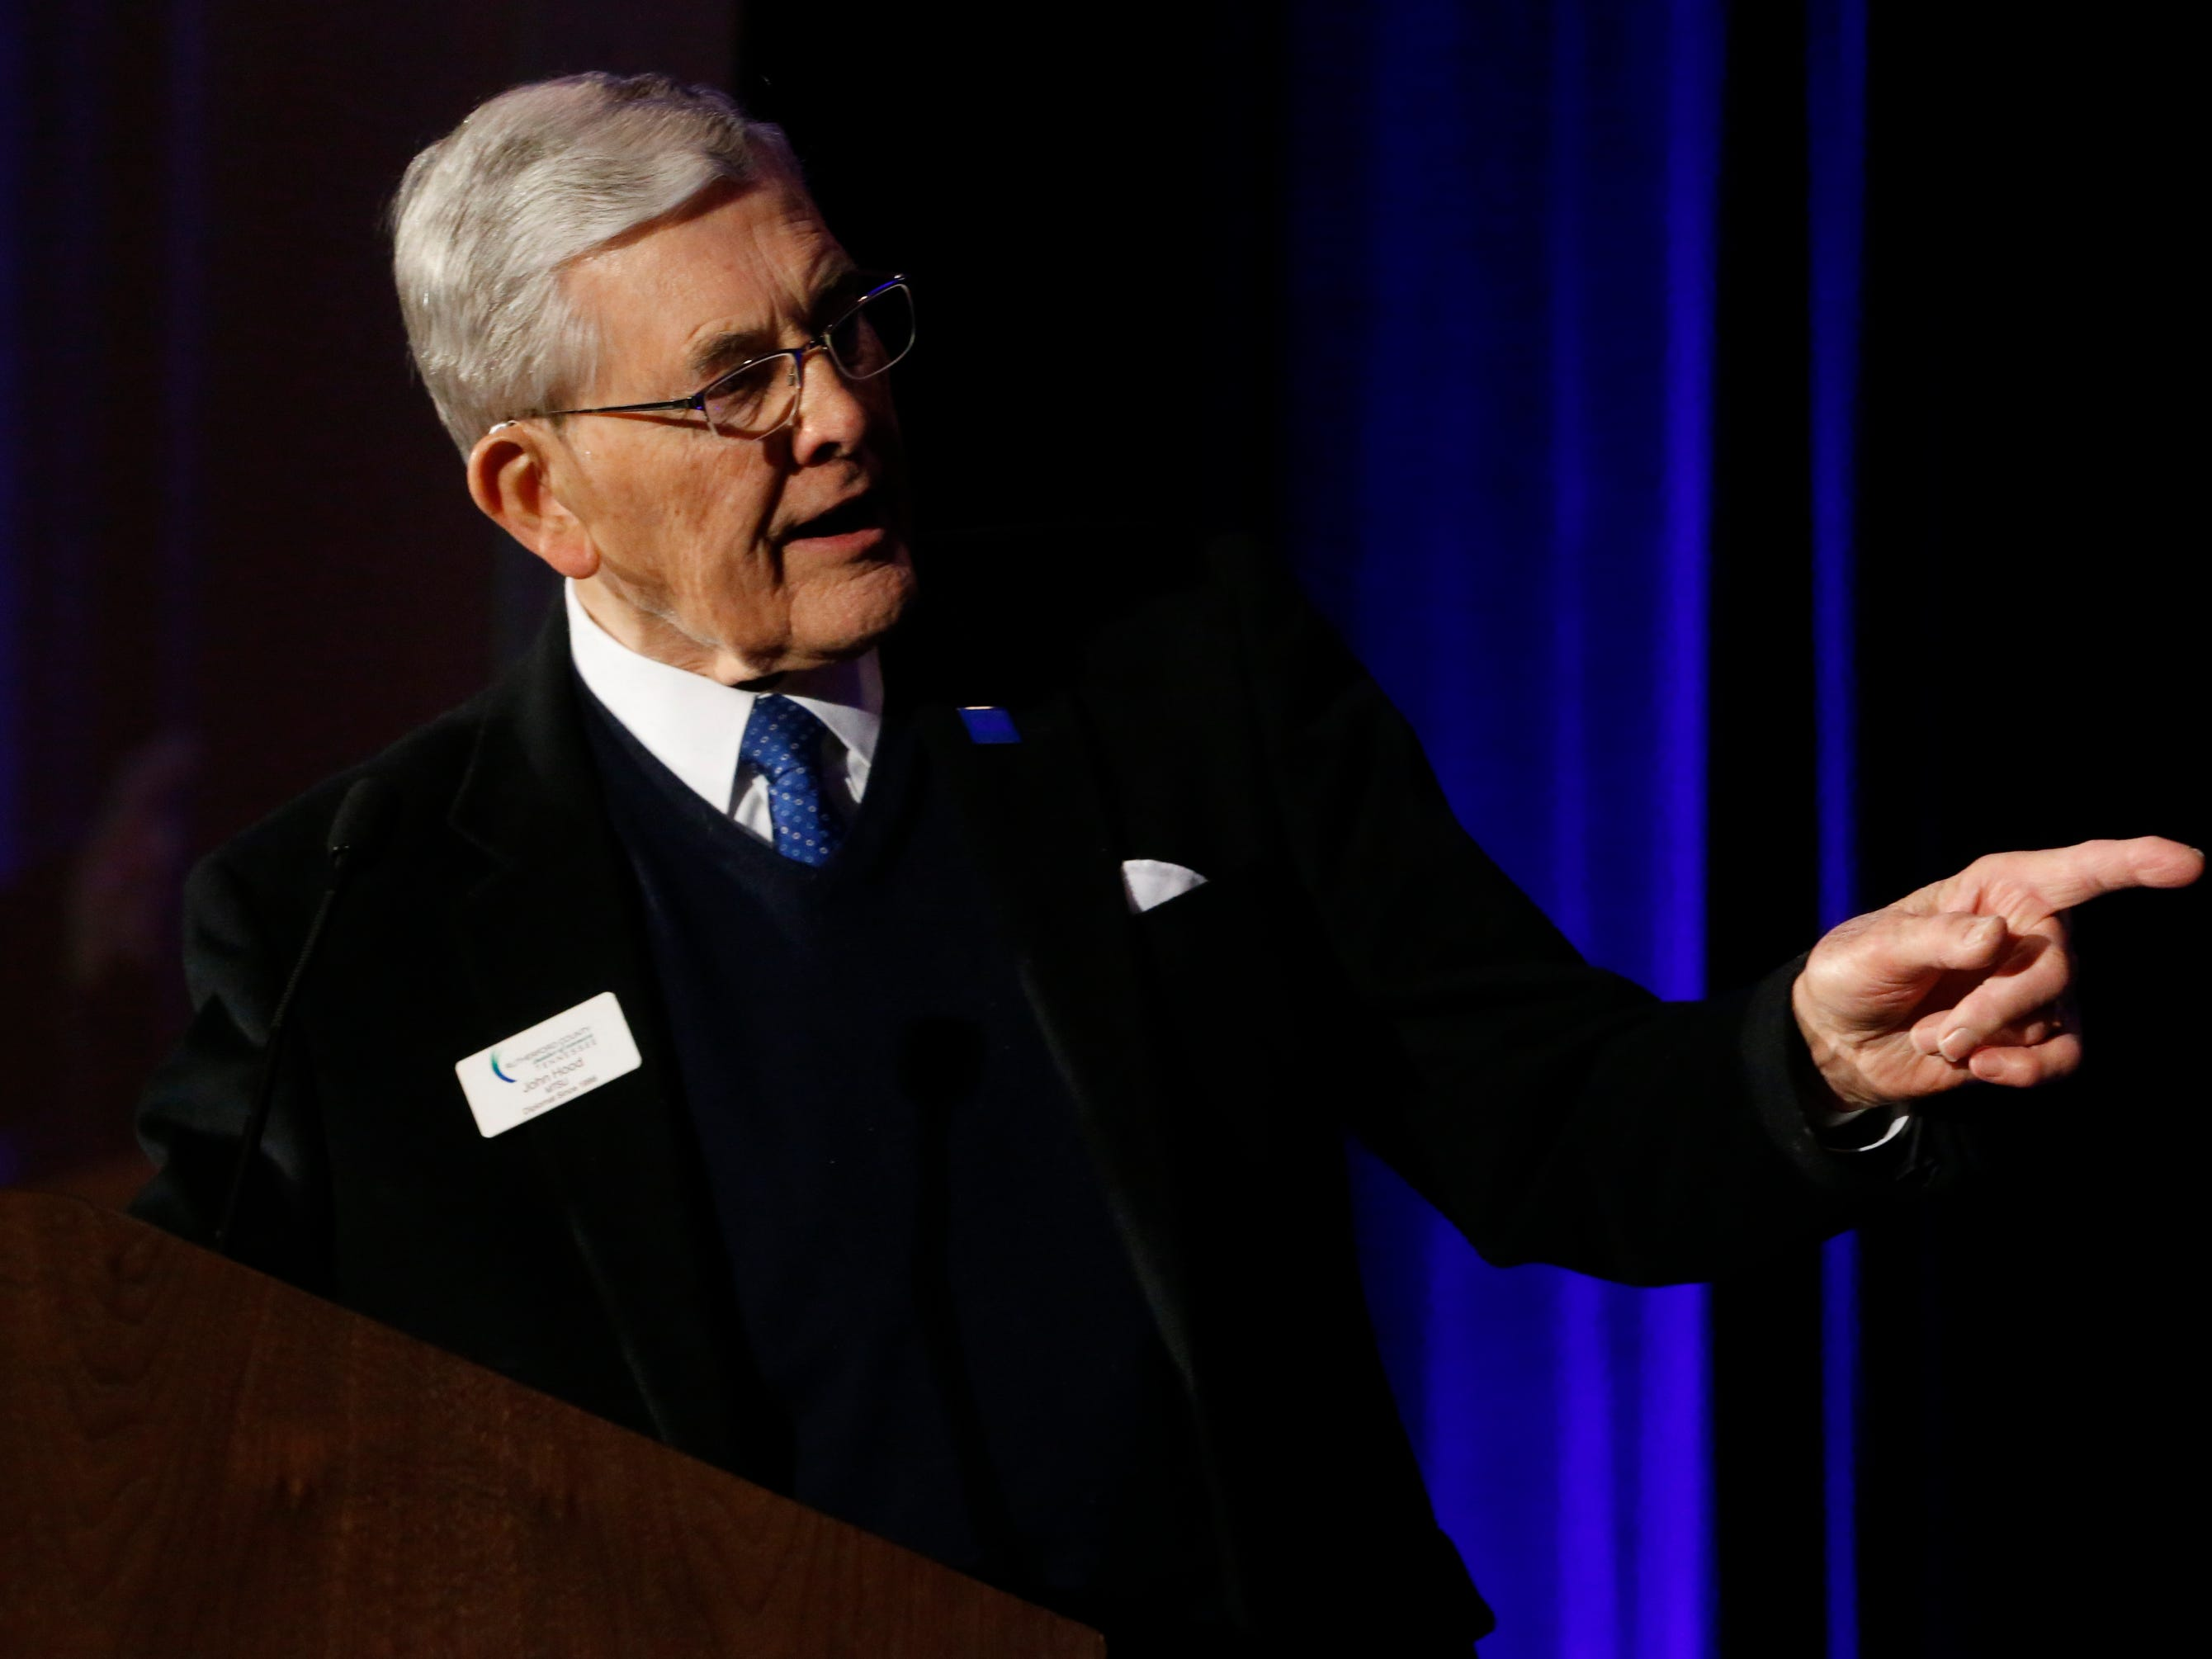 John Hood addresses the crowd after he was presented this year's Doug Young Lifetime Achievement Award at Business at Its Best was held on Wednesday, Jan. 31, 2019 at Embassy Suites.